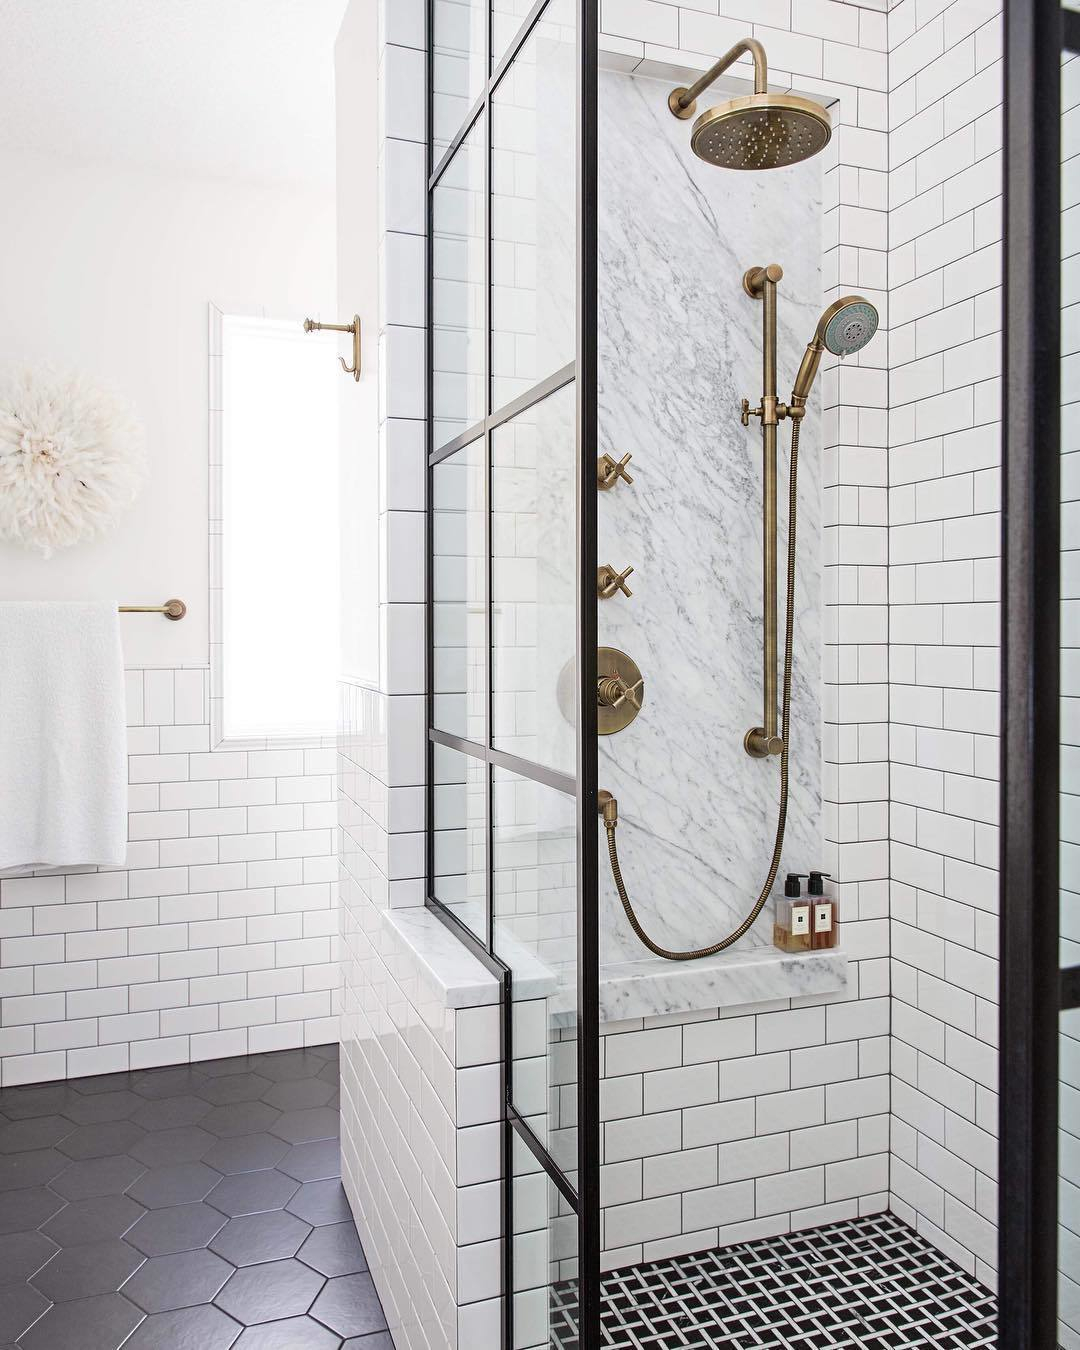 newport brass contemporary shower trim with rainhead and handshower in aged bronze with cross handles - the ultimate guide to luxury plumbing by the delight of design